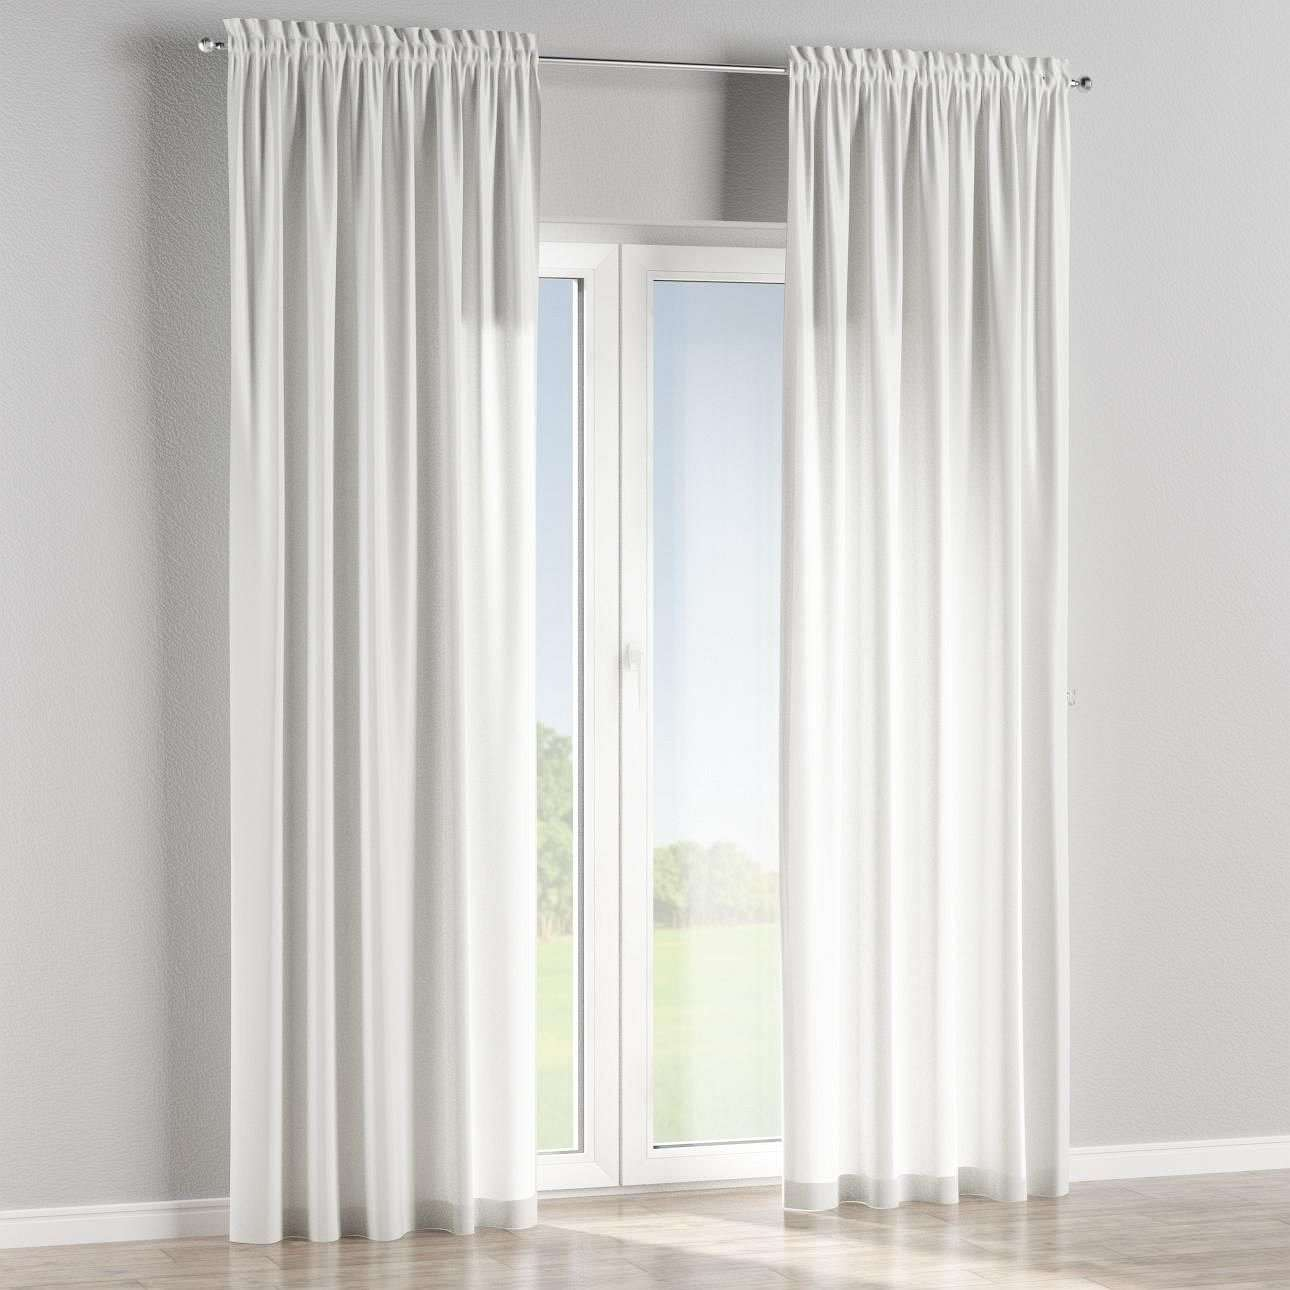 Slot and frill lined curtains in collection Cardiff, fabric: 136-23